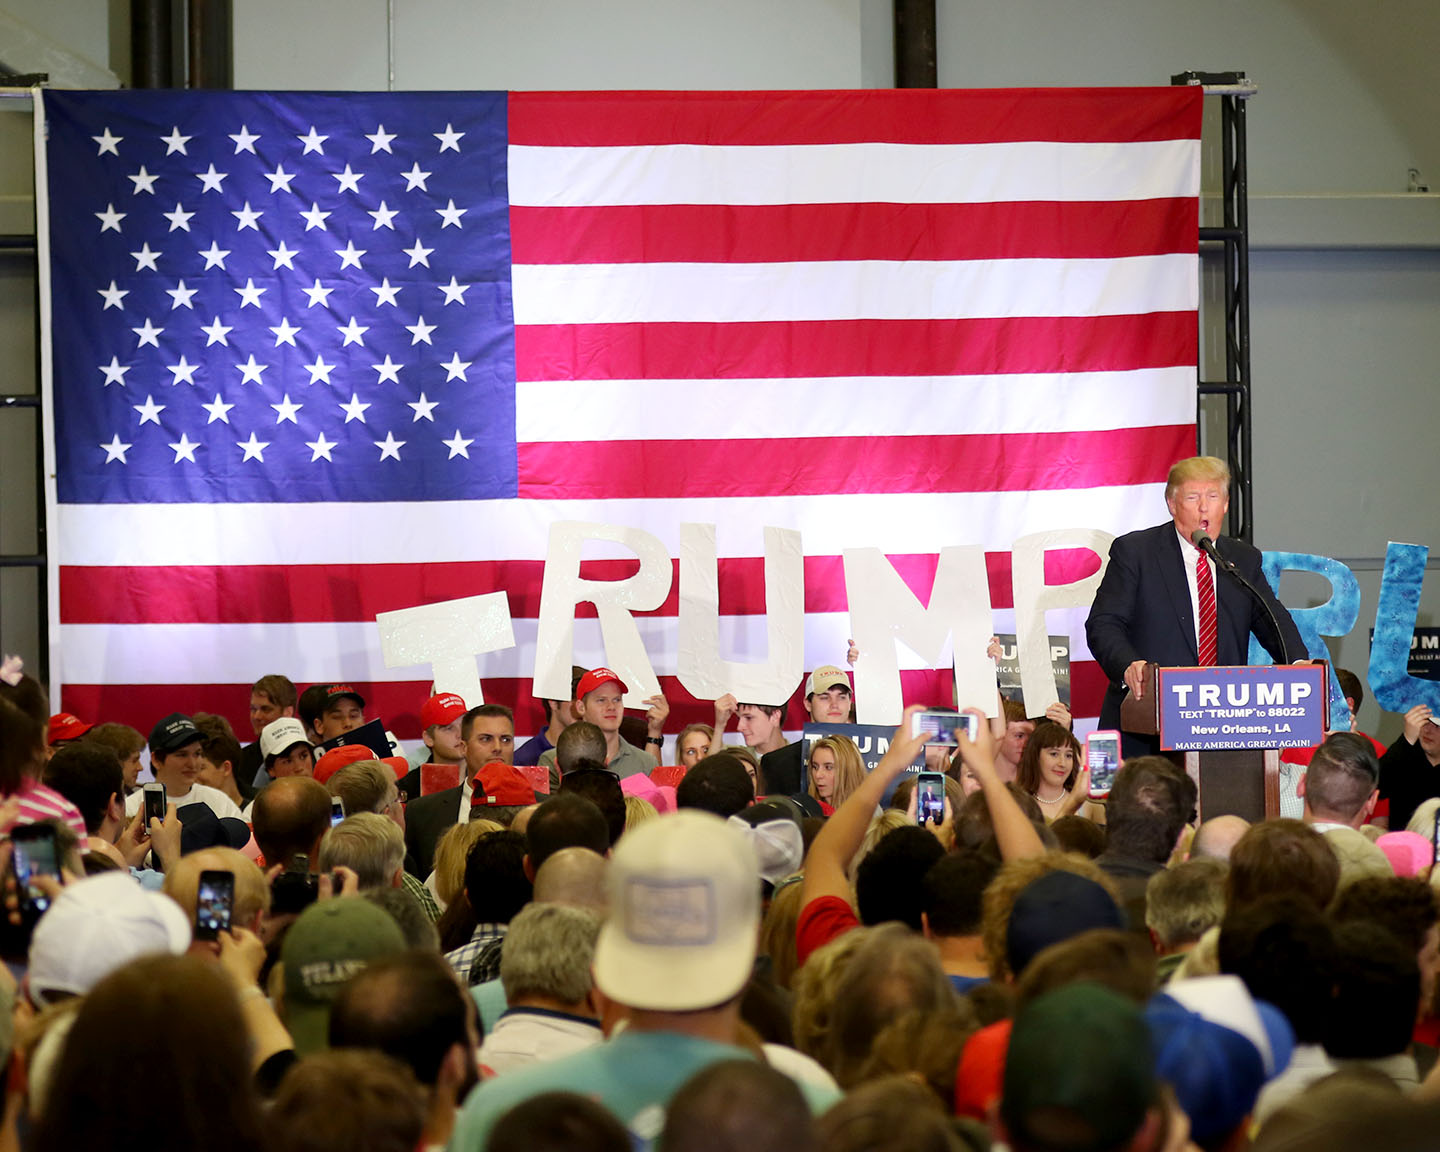 Donald Trump delivers his speech. Trump, the leader in the 2106 Republican presidential race, held a rally at the Lakefront Airport on Friday, March 4, 2016.